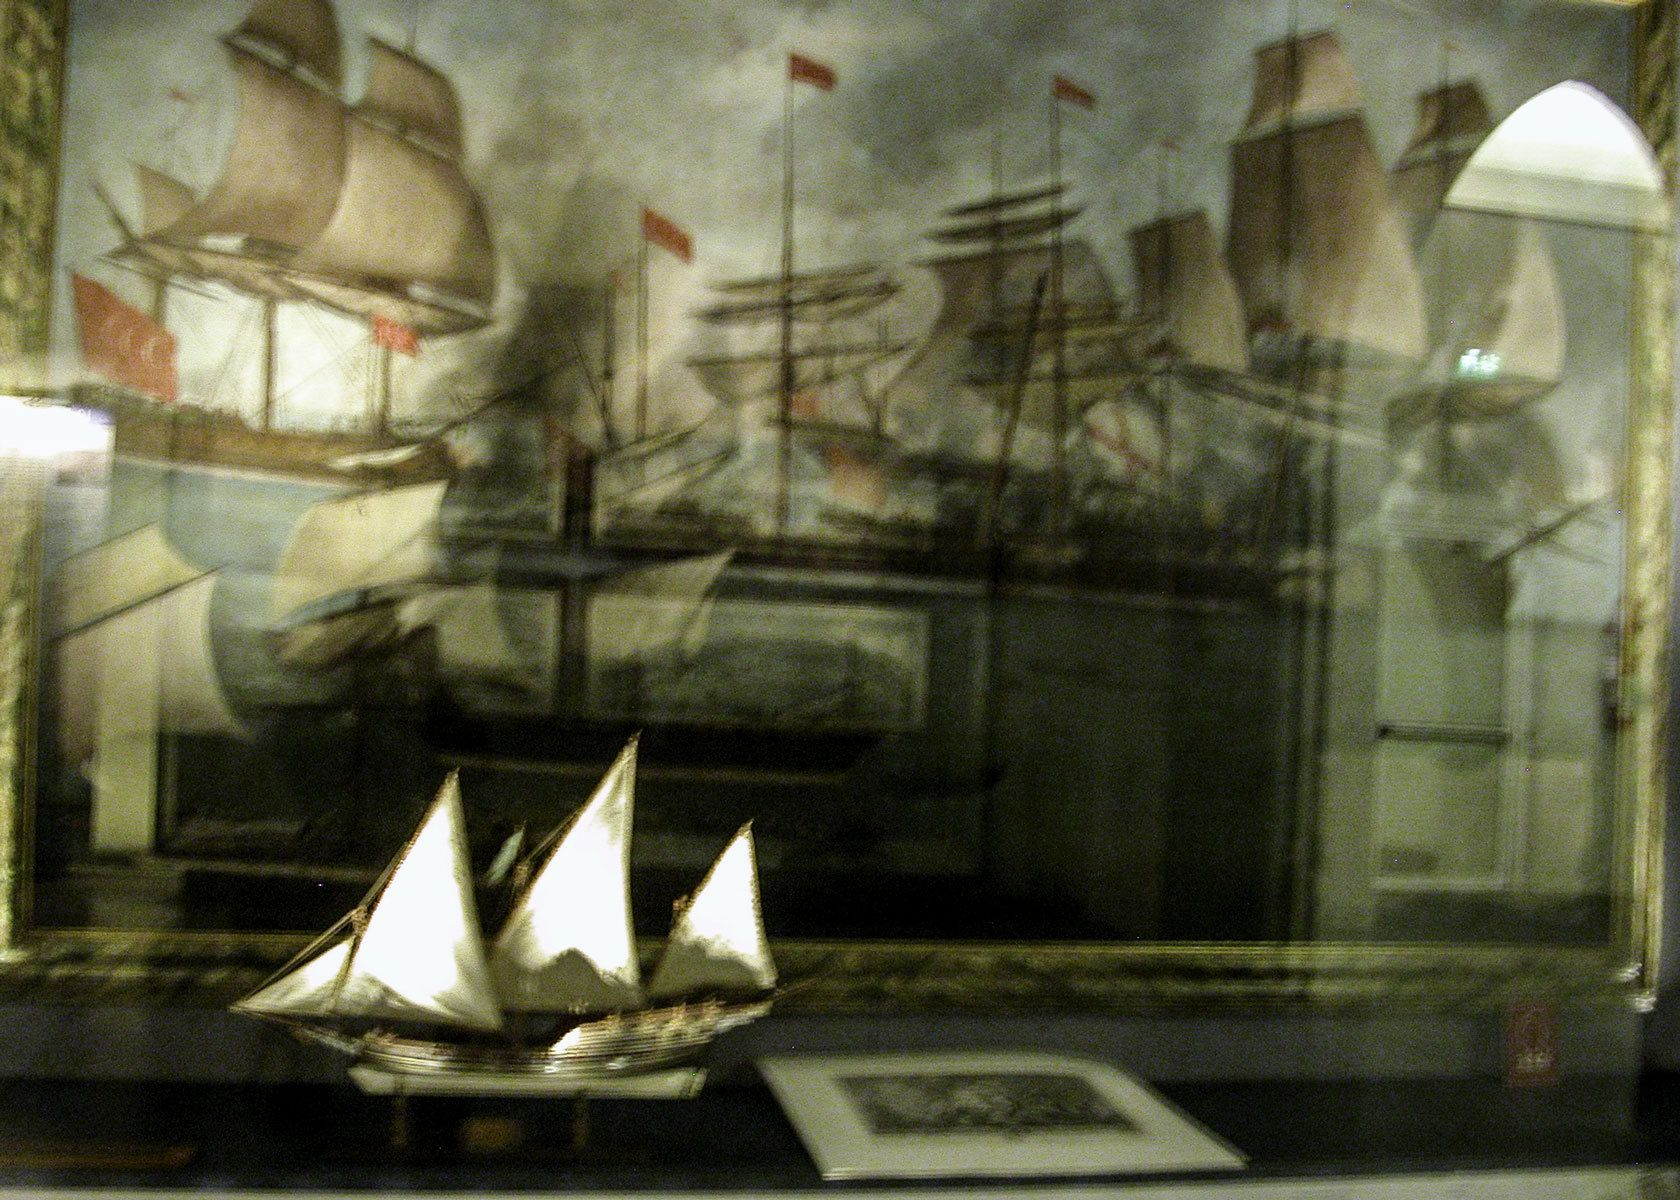 Sea Voyage through the Ages